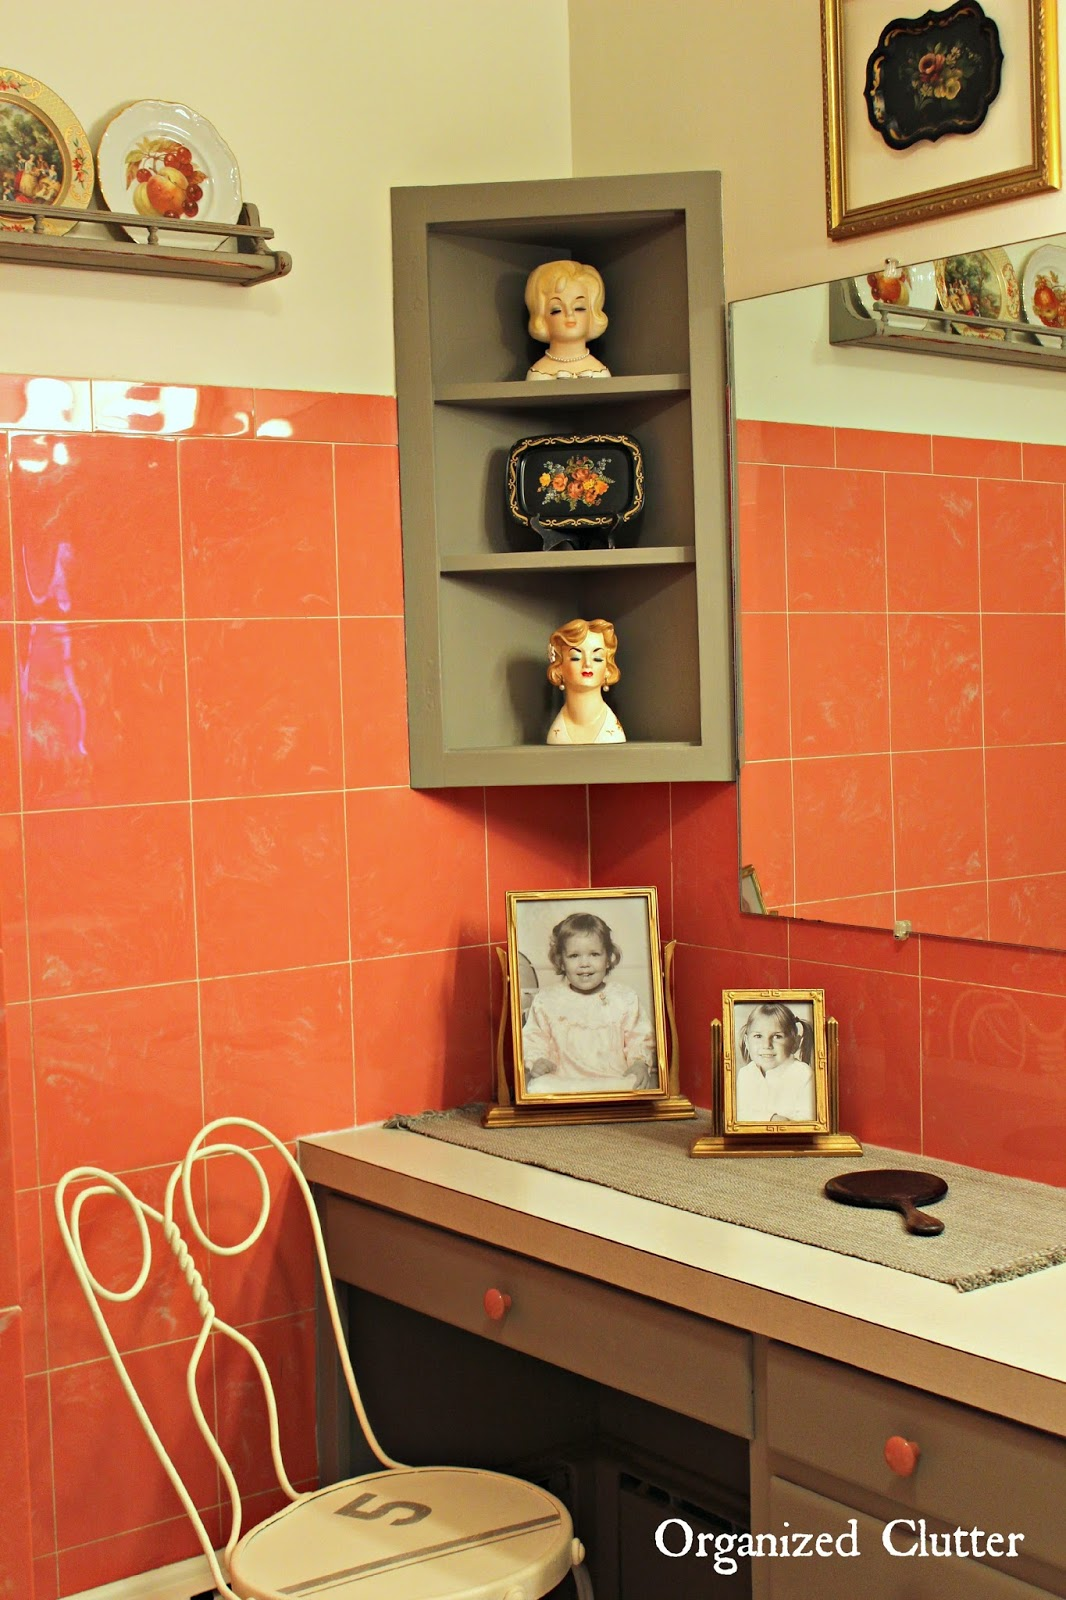 Period Decor for a Vintage Bathroom www.organizedclutterqueen.blogspot.com